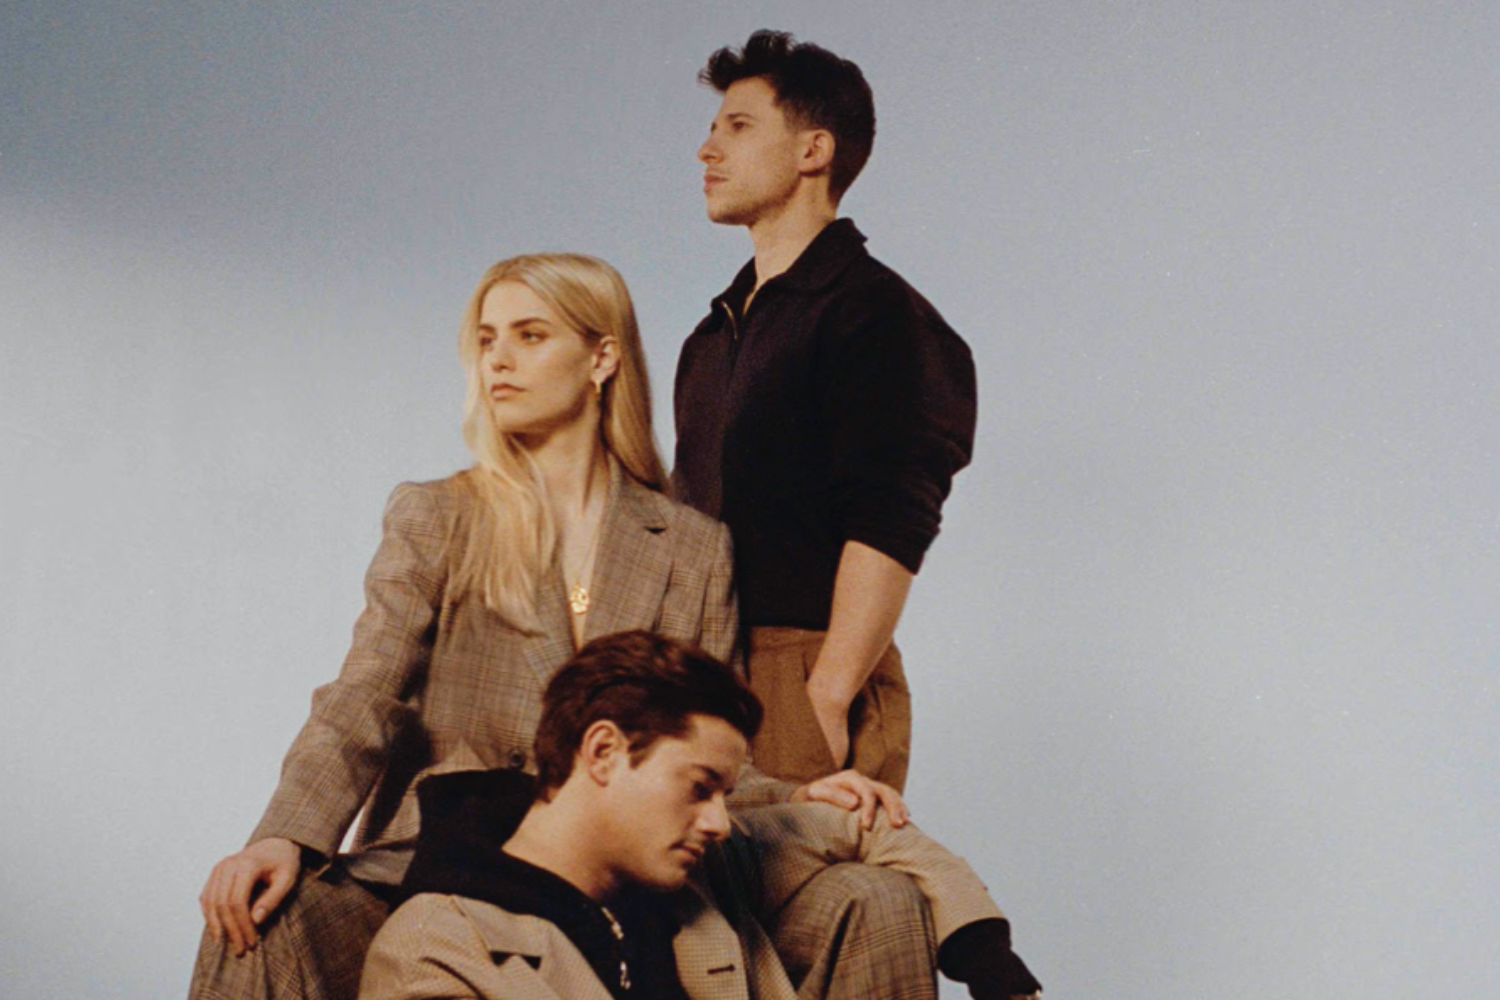 London Grammar return with 'Baby It's You'